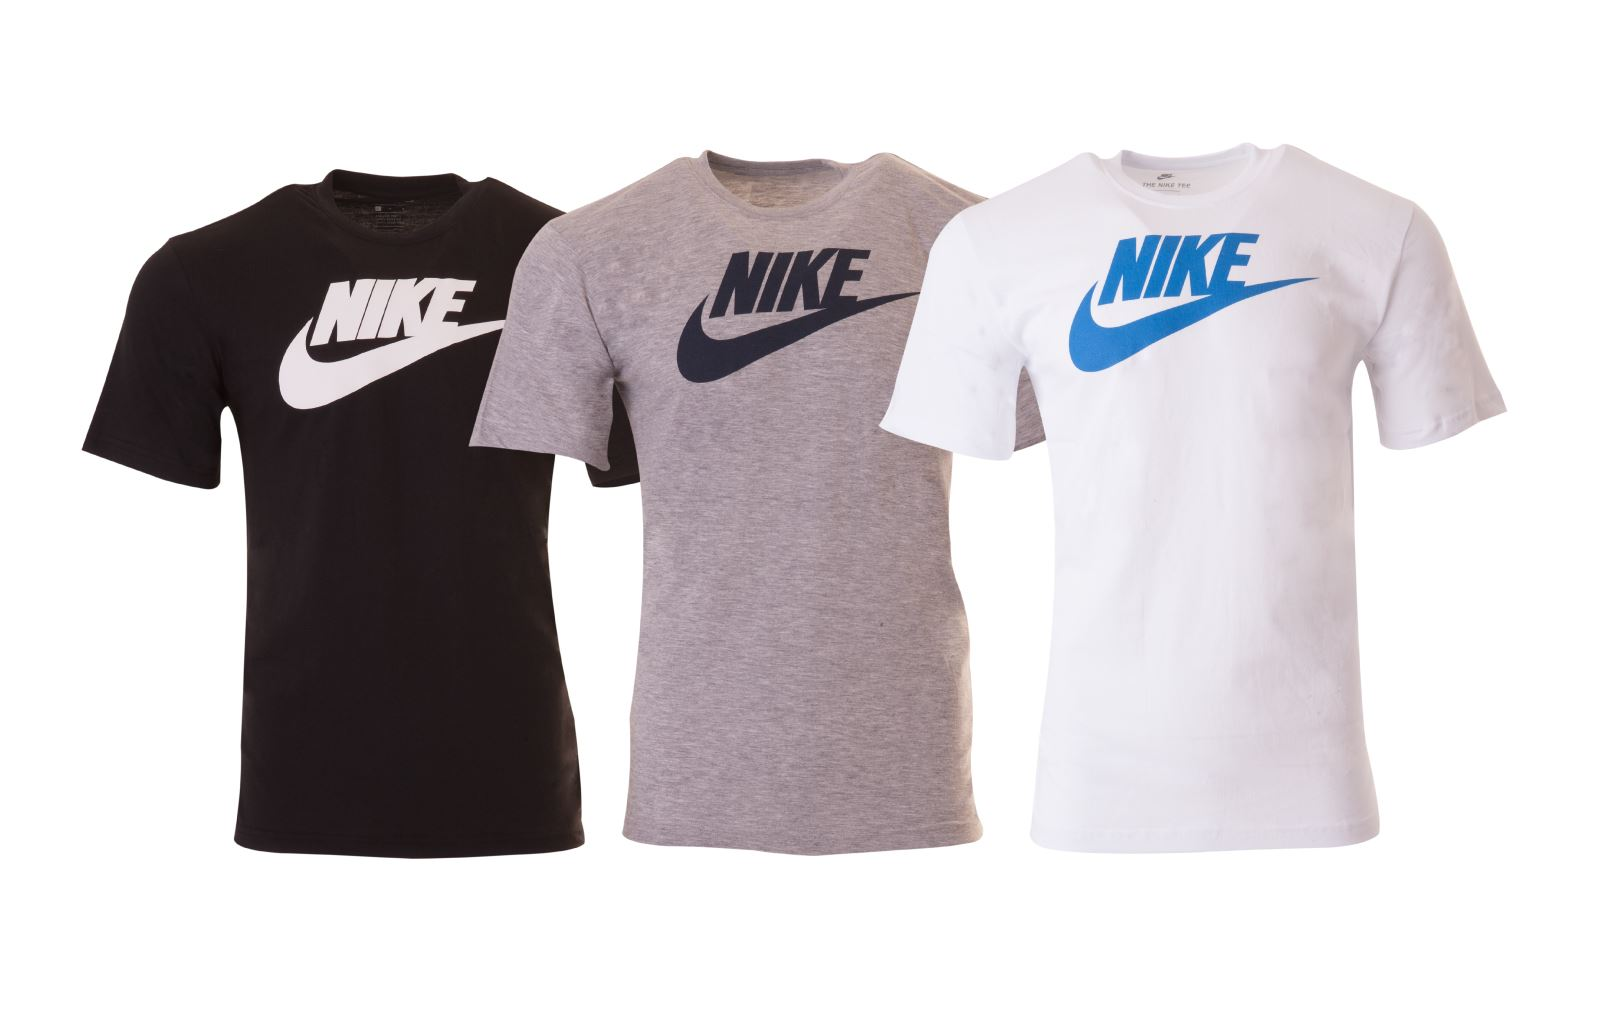 ddb6c3ae Details about Nike New Men's Tee-Futura Icon T-Shirts Lot BLACK,GREY & WHITE  All Size's